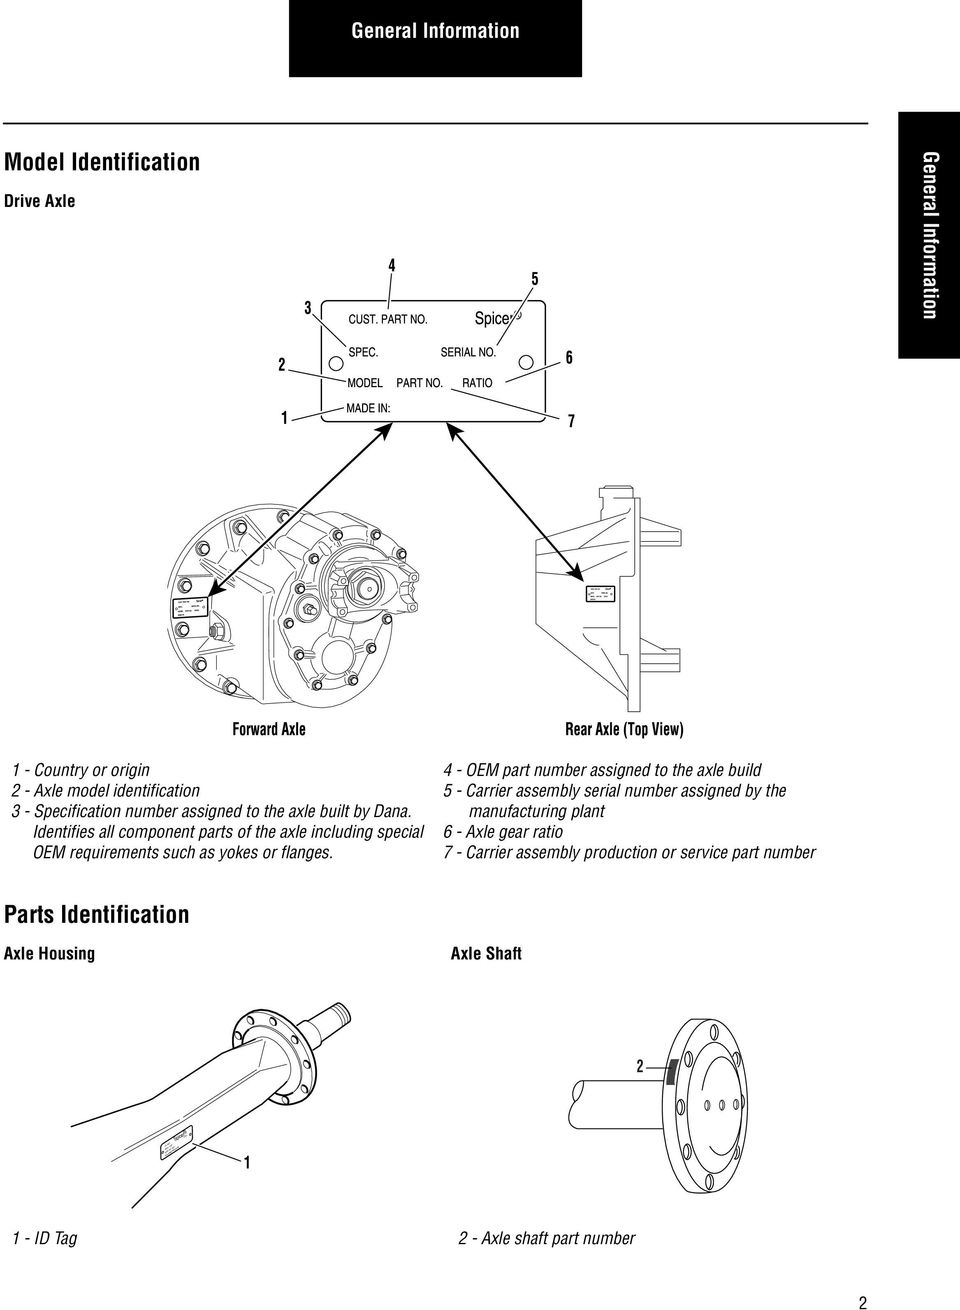 Spicer Tandem Drive Axles More Time On The Road Service Manual Differential Gear Schematic Part Number Parts Identification Axle Housing Shaft Pt No Hsg Cap Lbs Id Made In Tag